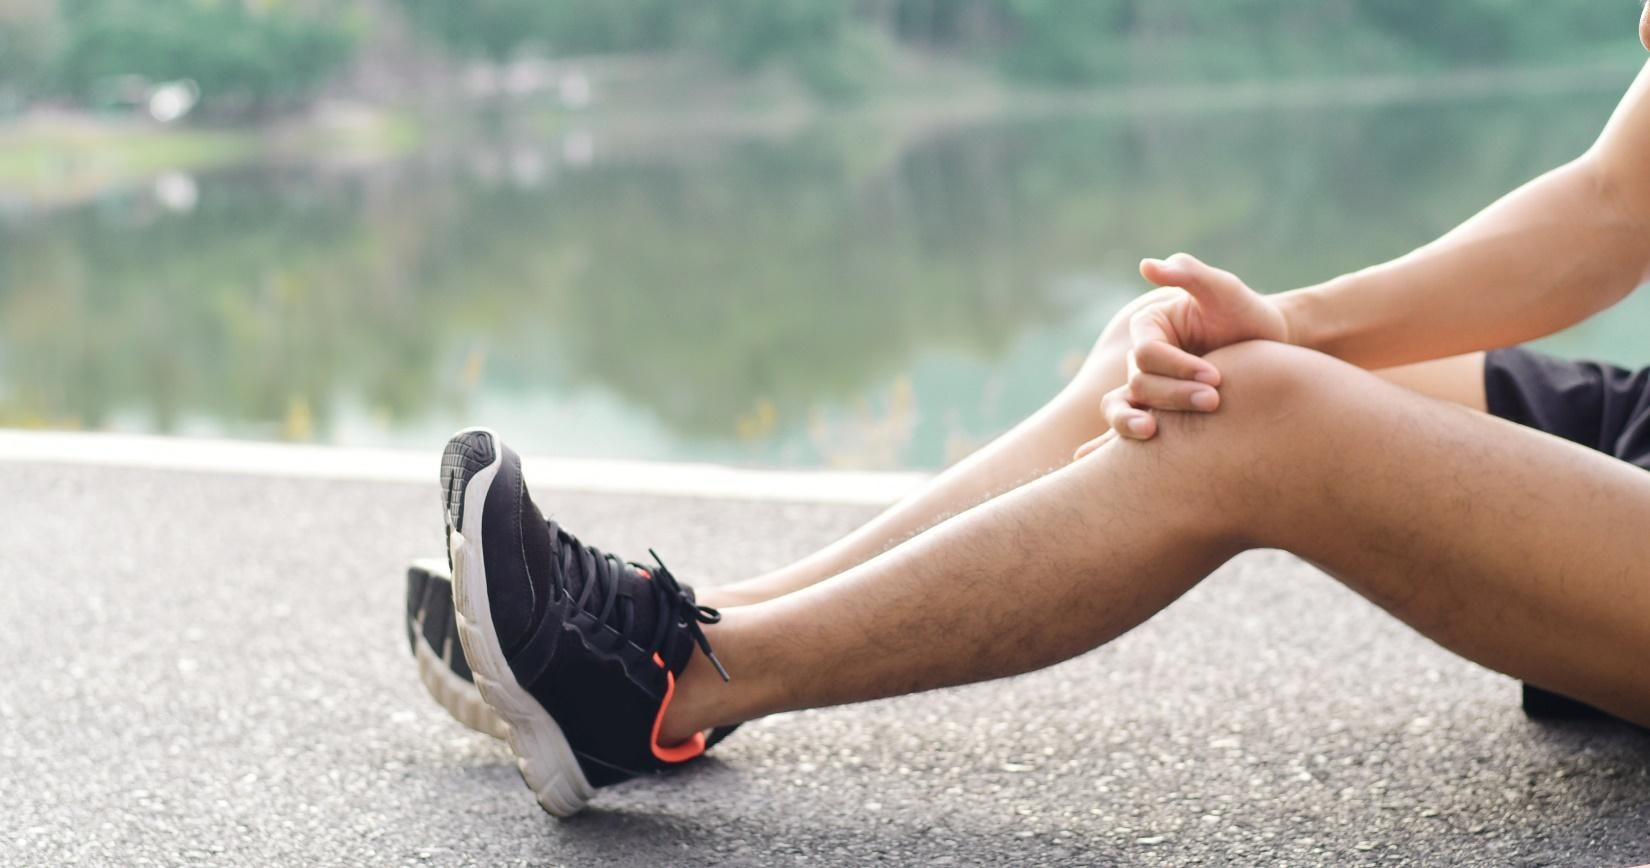 Runners This Common Race Day Ritual Could Kill You